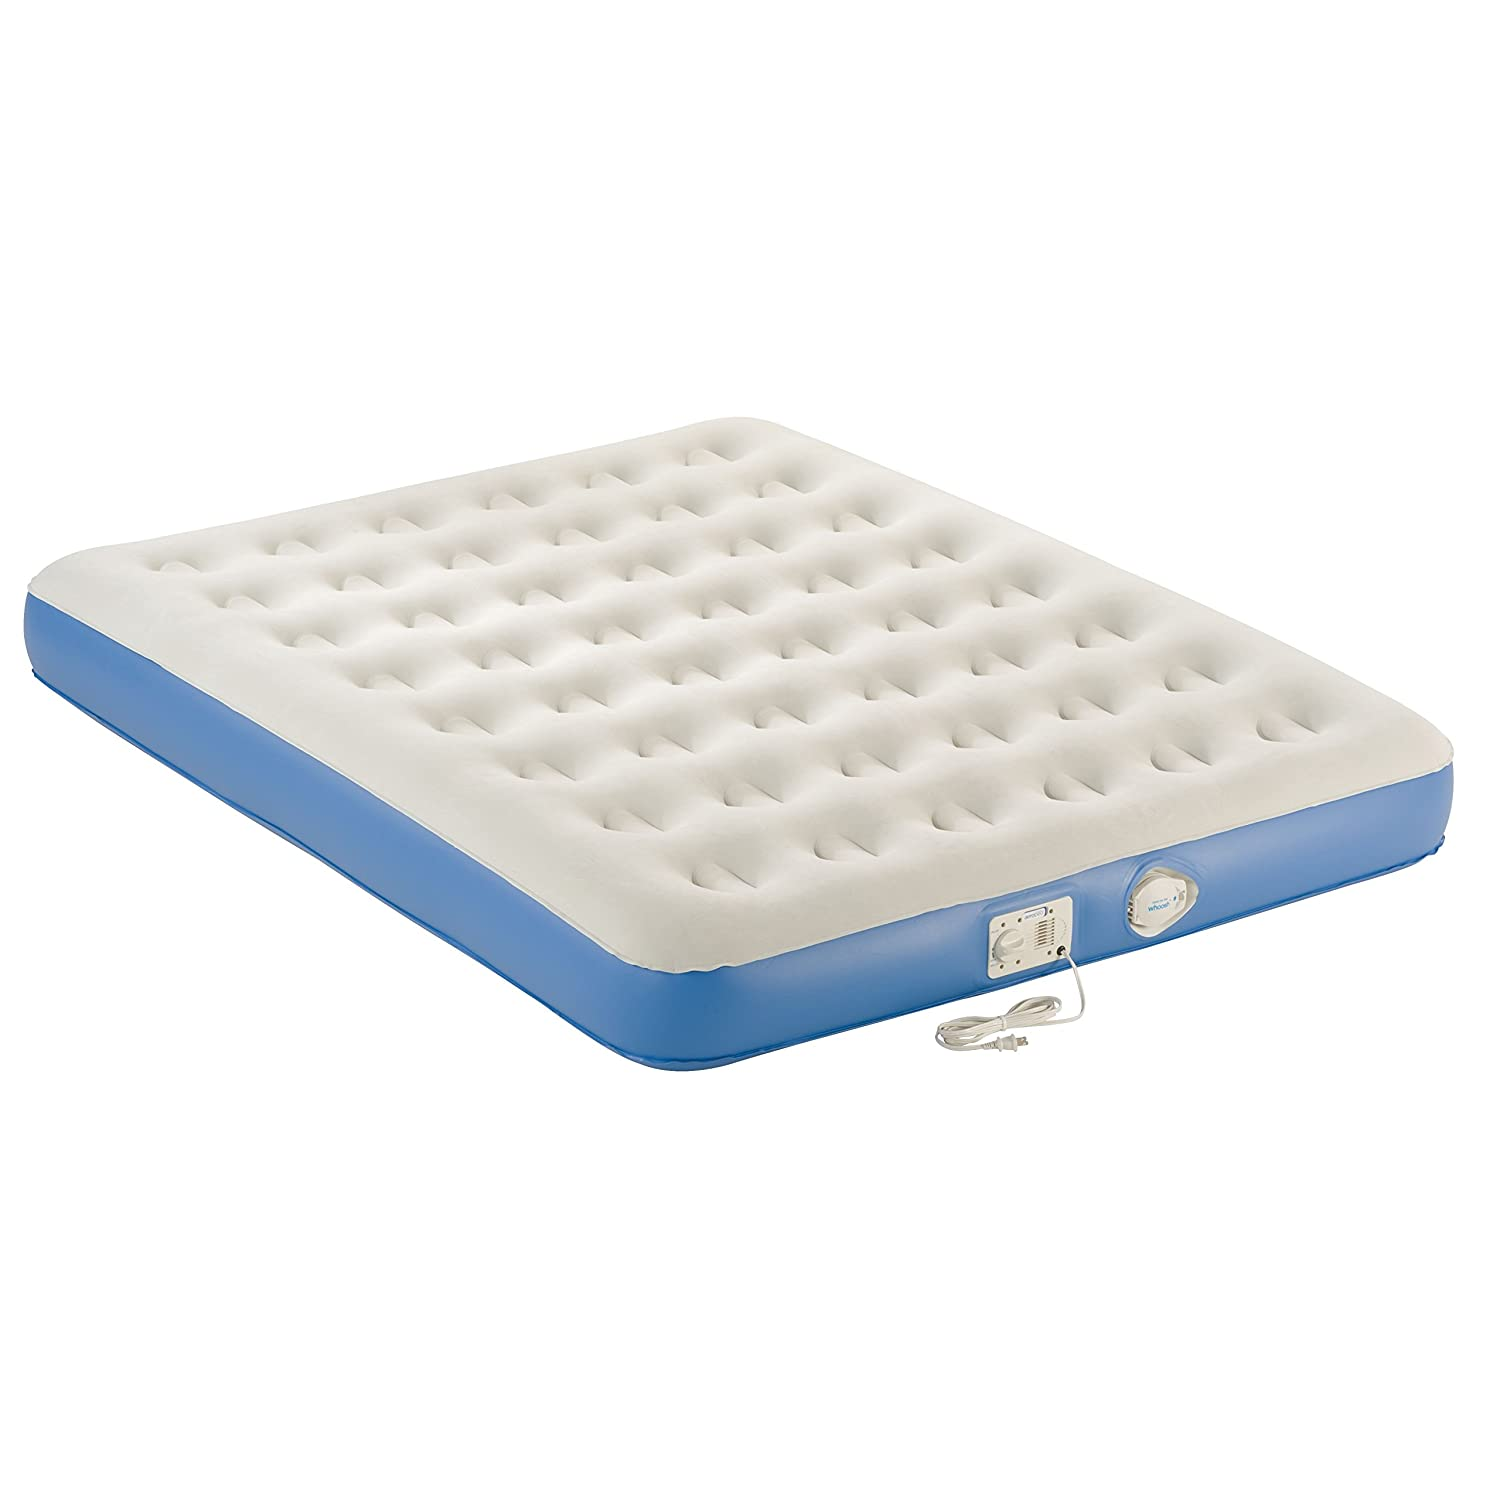 AeroBed Extra Bed with Built-In Pump